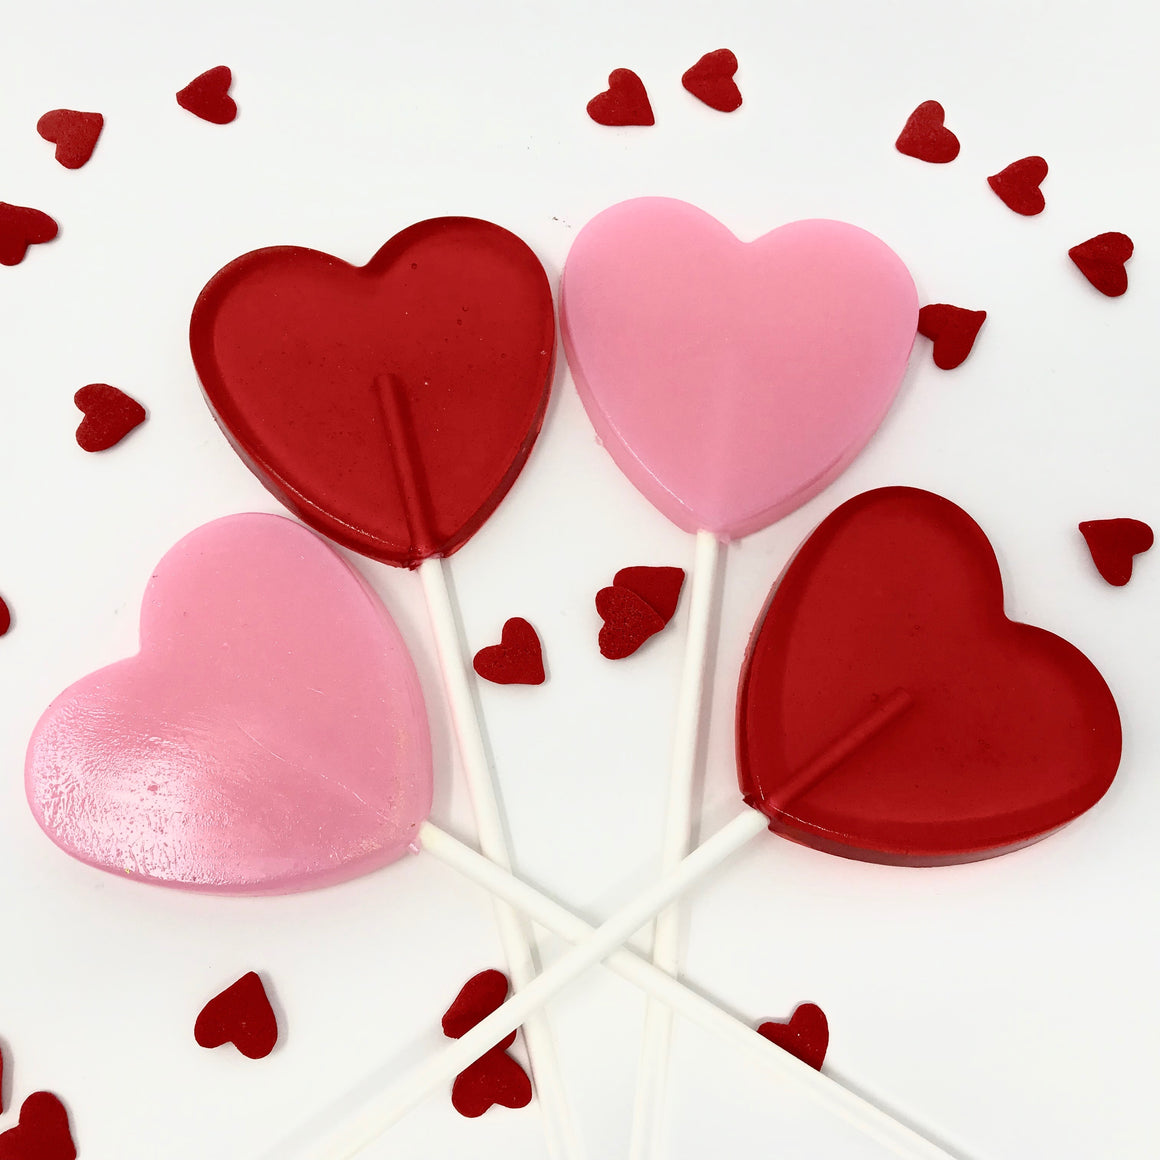 2 1/2 in Heart Lollipop set of 6pc